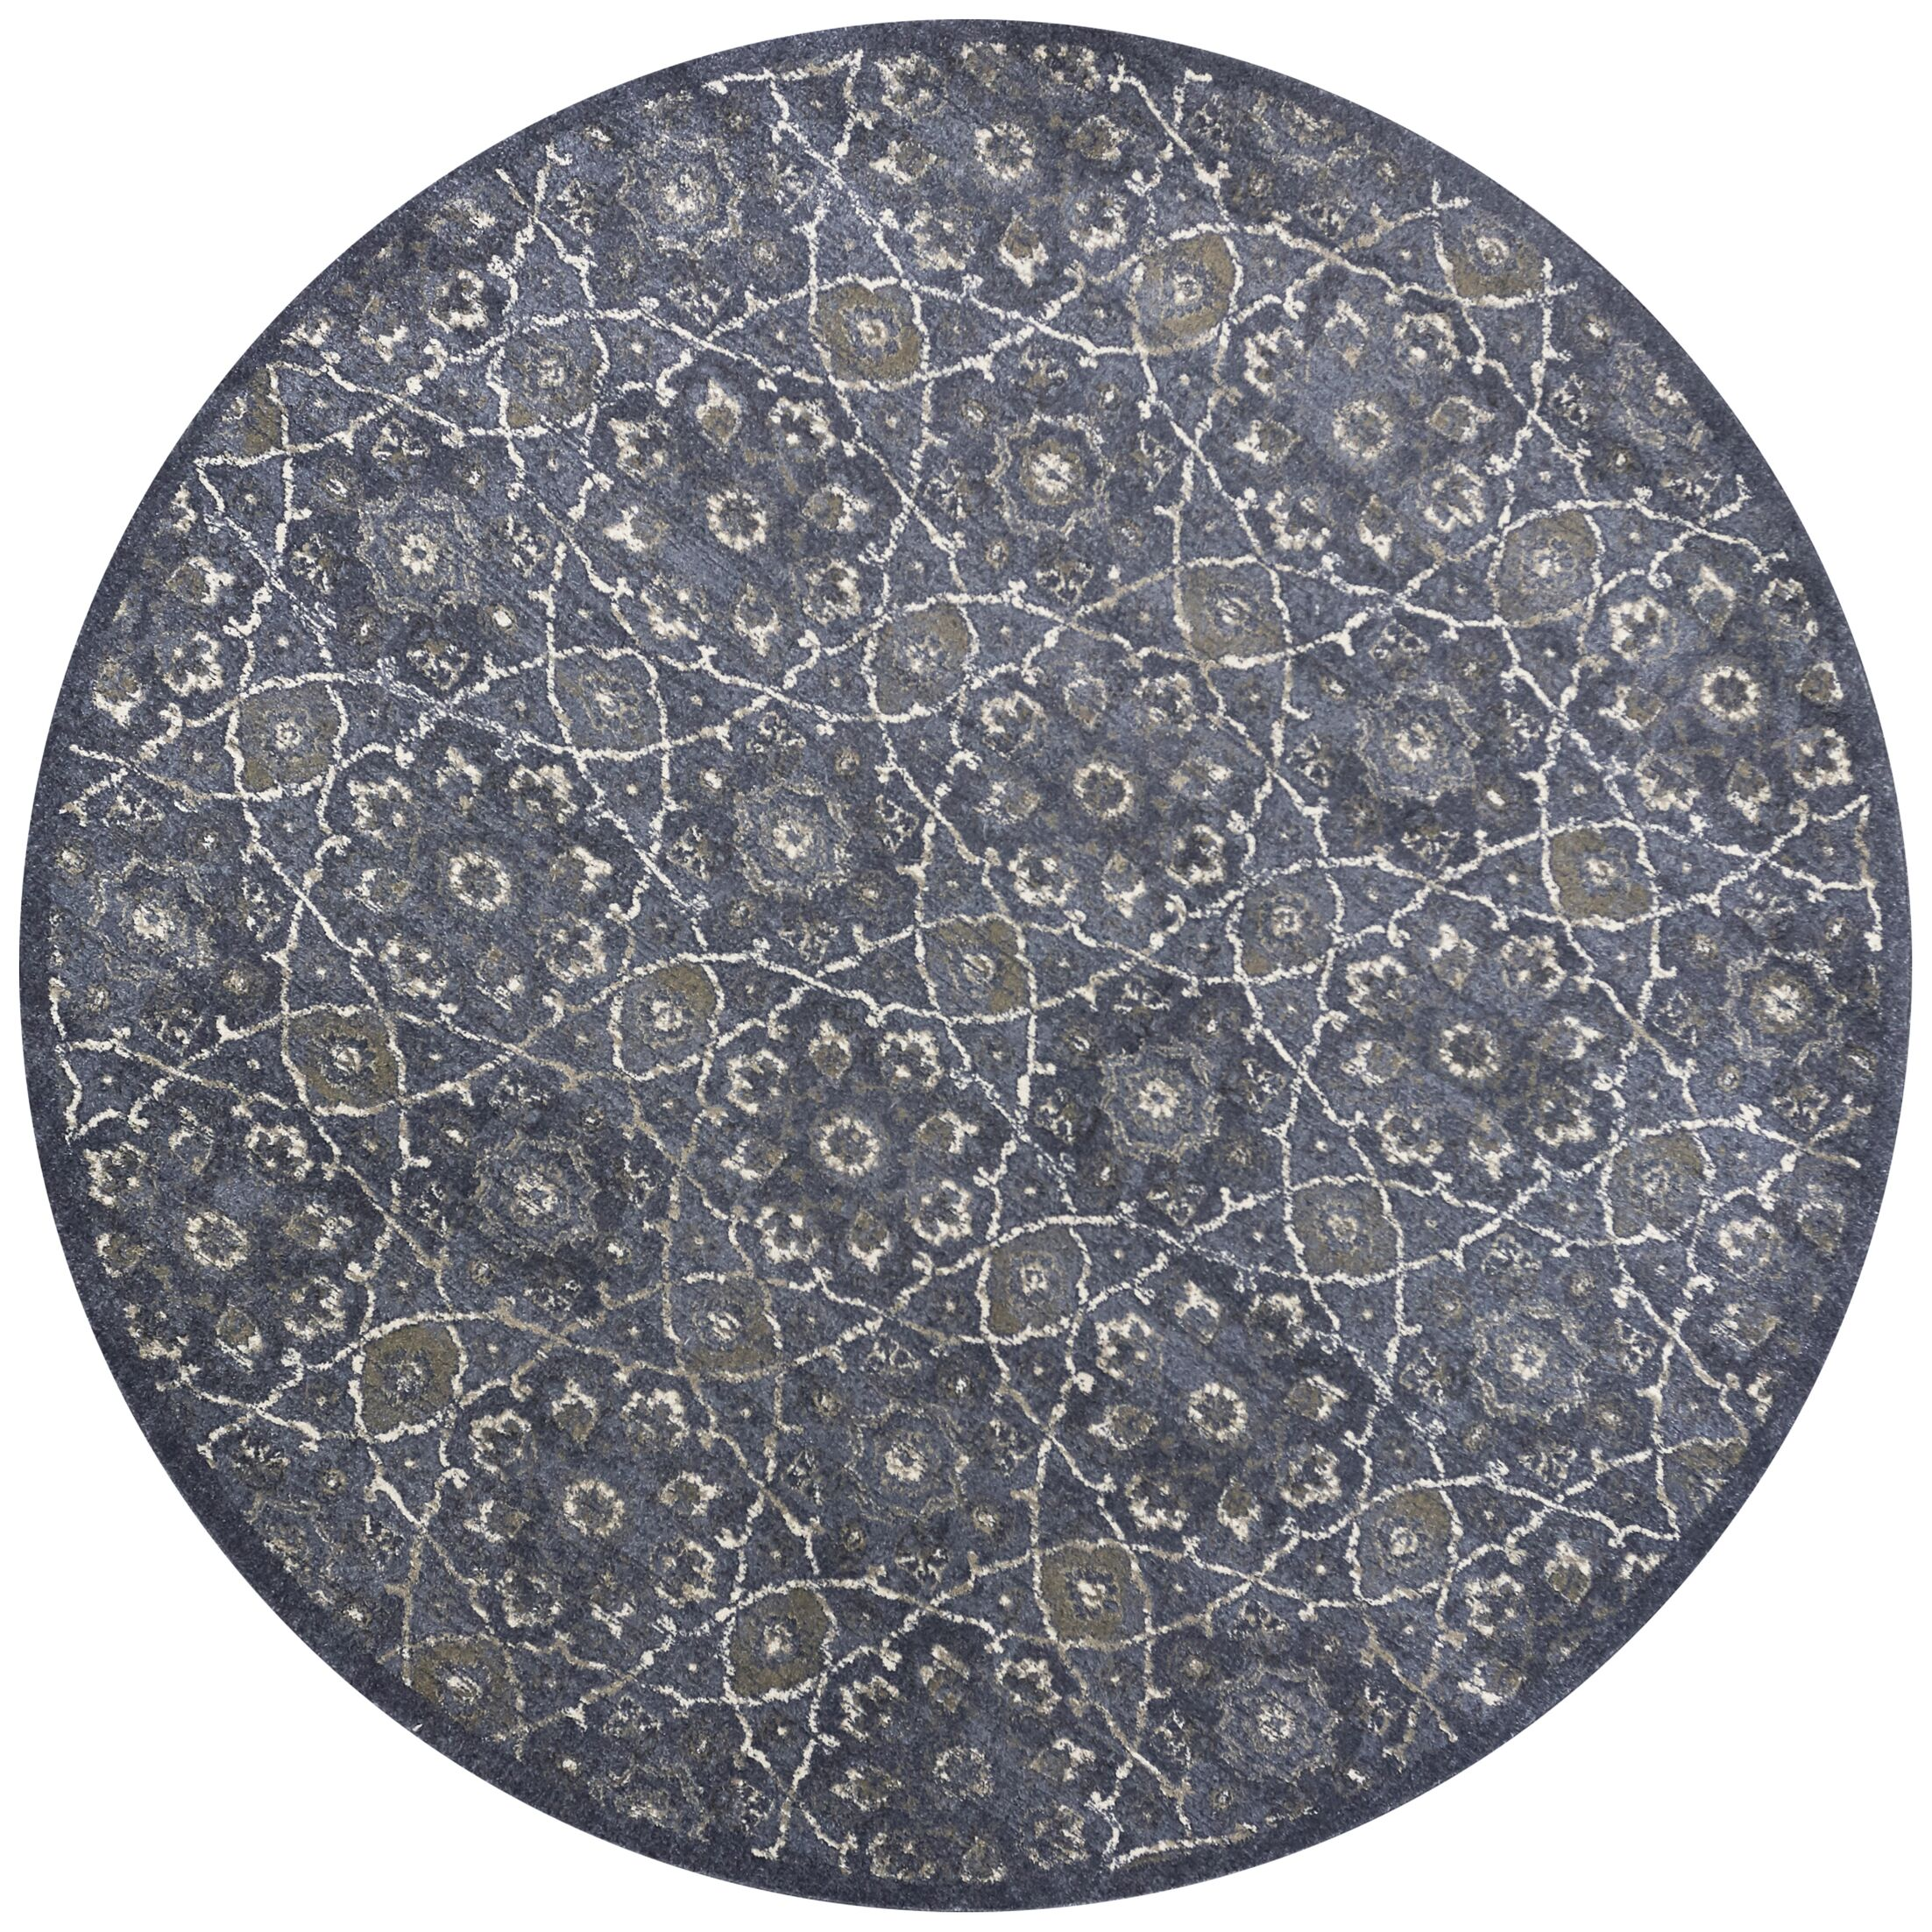 Holder Denim Area Rug Rug Size: Round 7'7